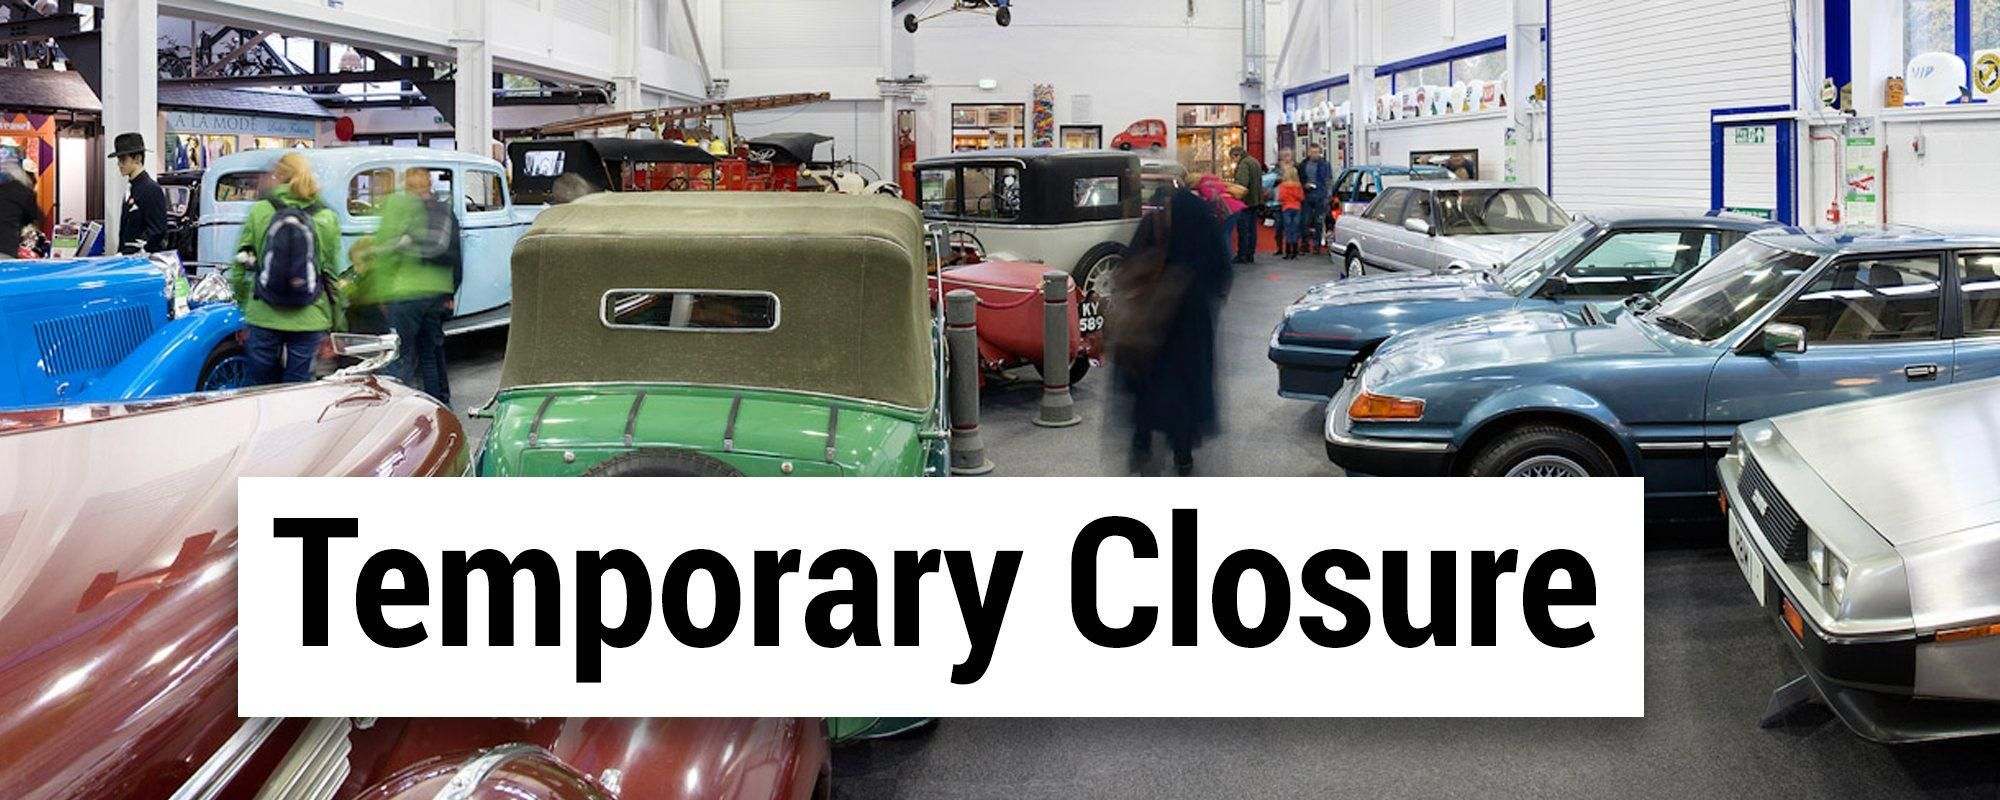 Image of museum with temporary closure on the graphic